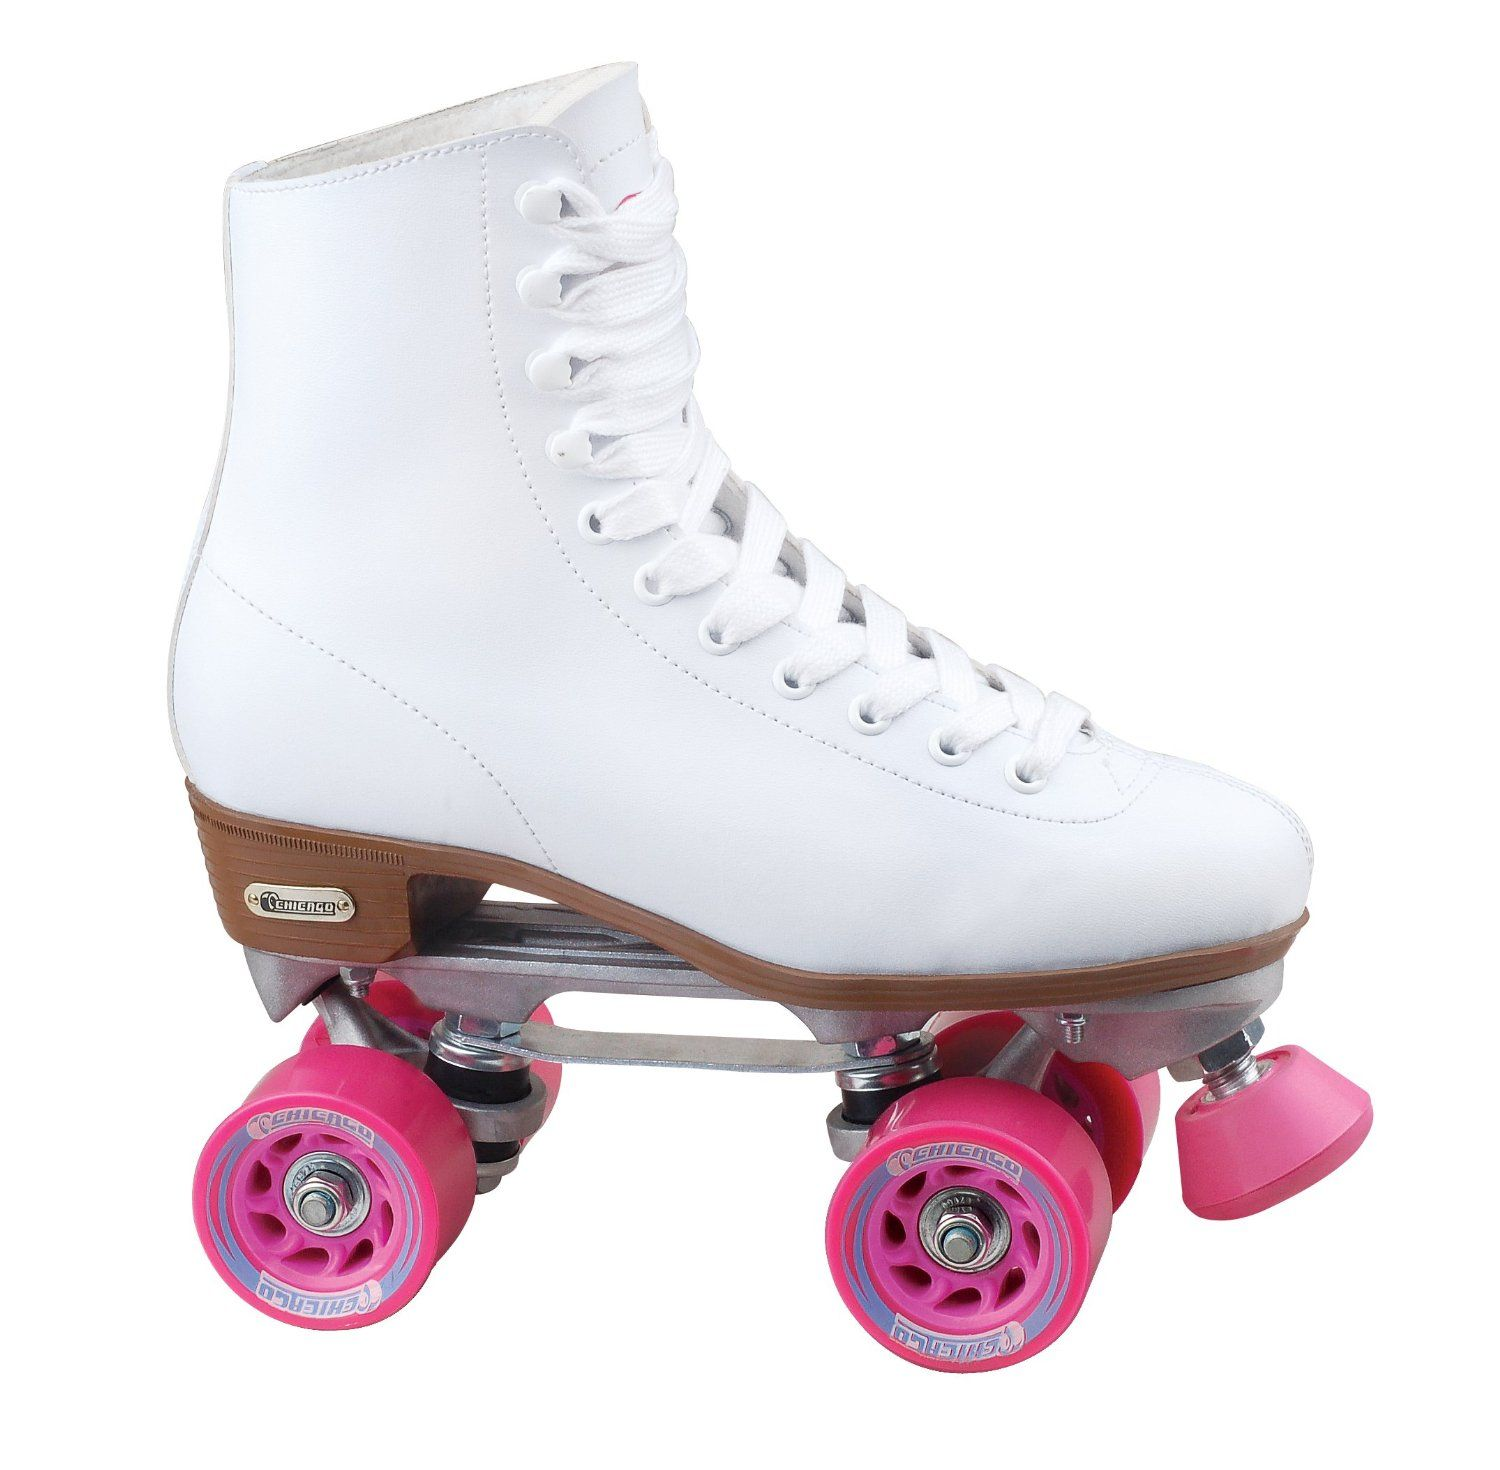 Chicago Womens Rink Skate Sports Outdoors Girls Roller Skates Chicago Skates Quad Roller Skates